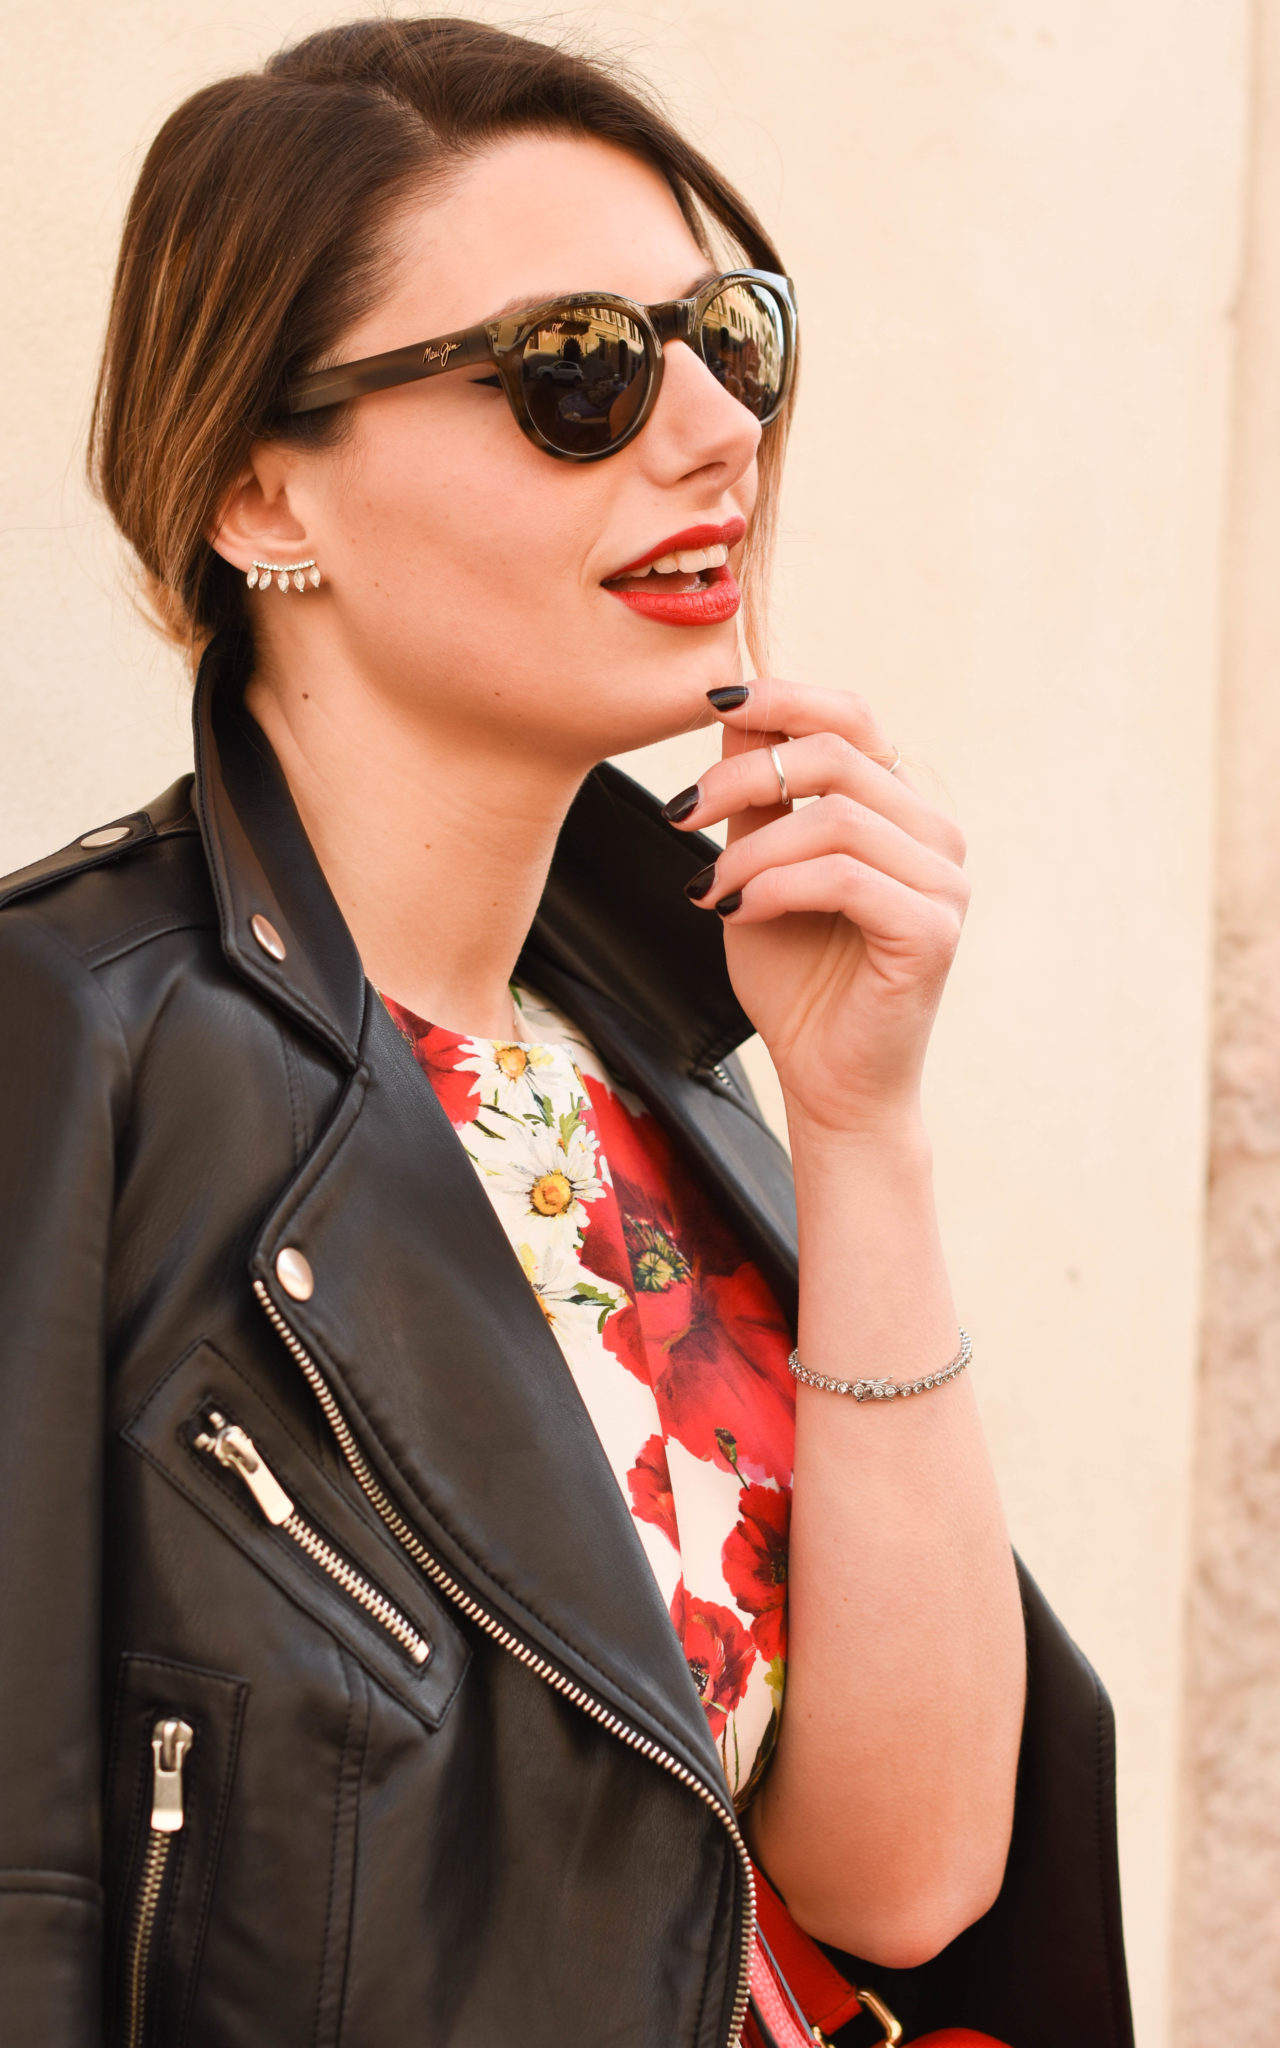 Giulia De Martin behindmyglasses.com sunglasses Maui Jim eyewear collection Dolce & Gabbana bag dress Valentino rockstud pumps red mango leather jacket-10